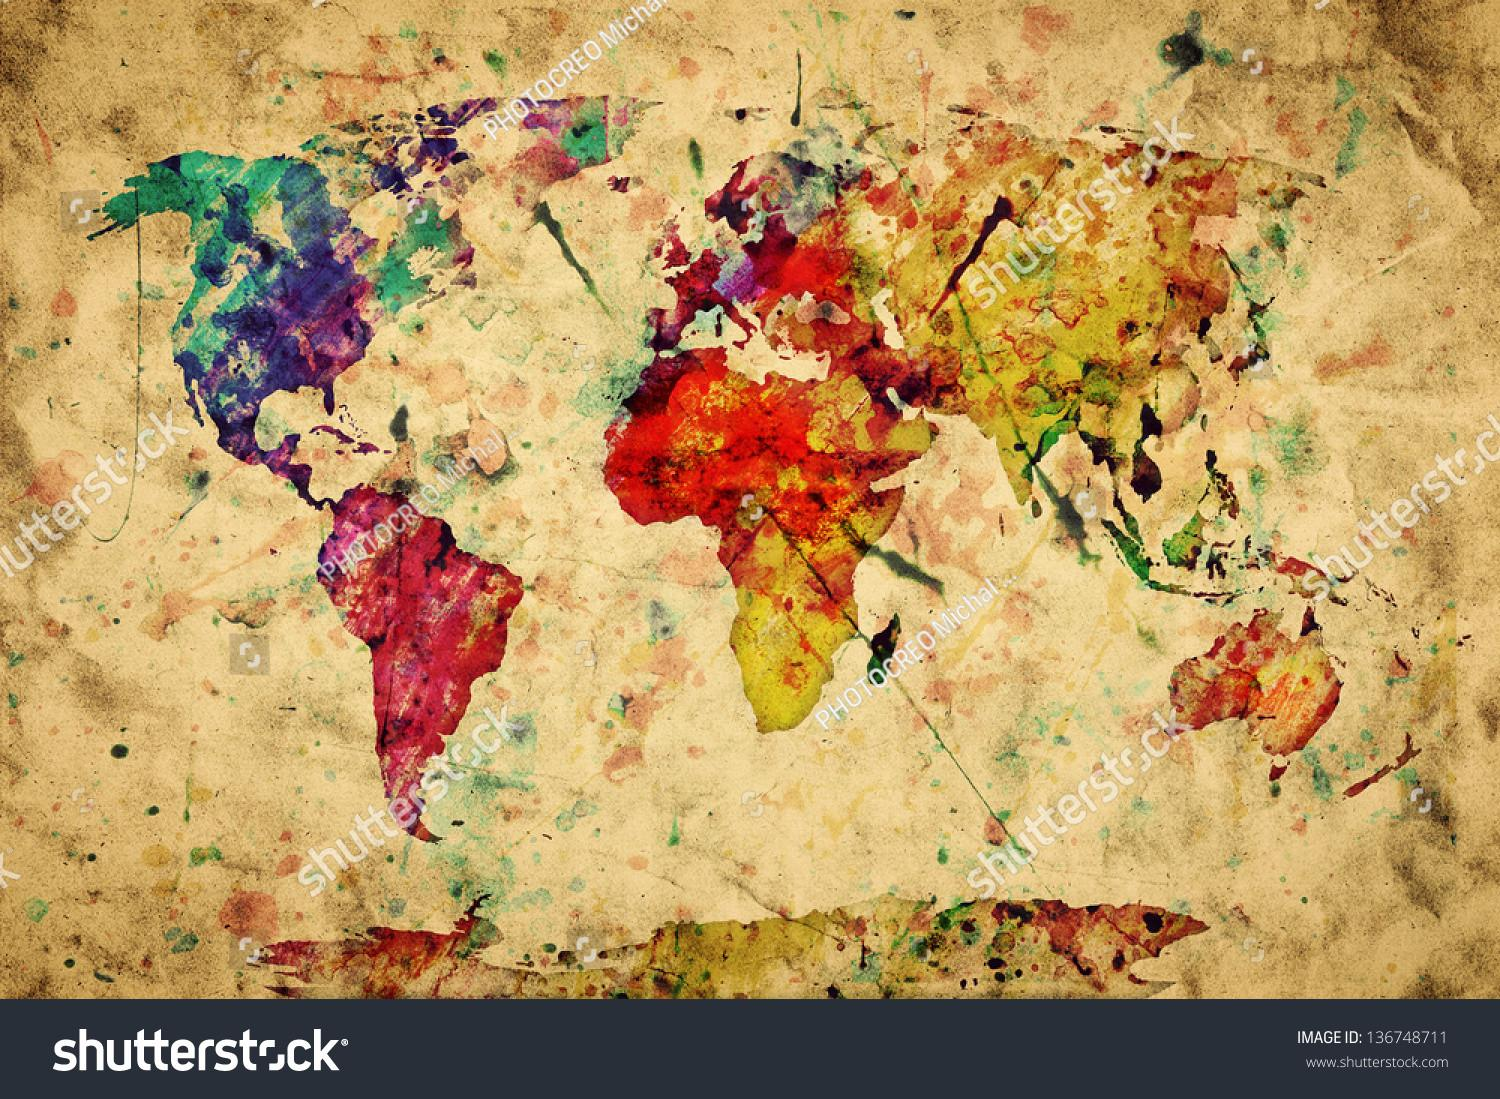 Vintage World Map Colorful Paint Watercolor Retro Style